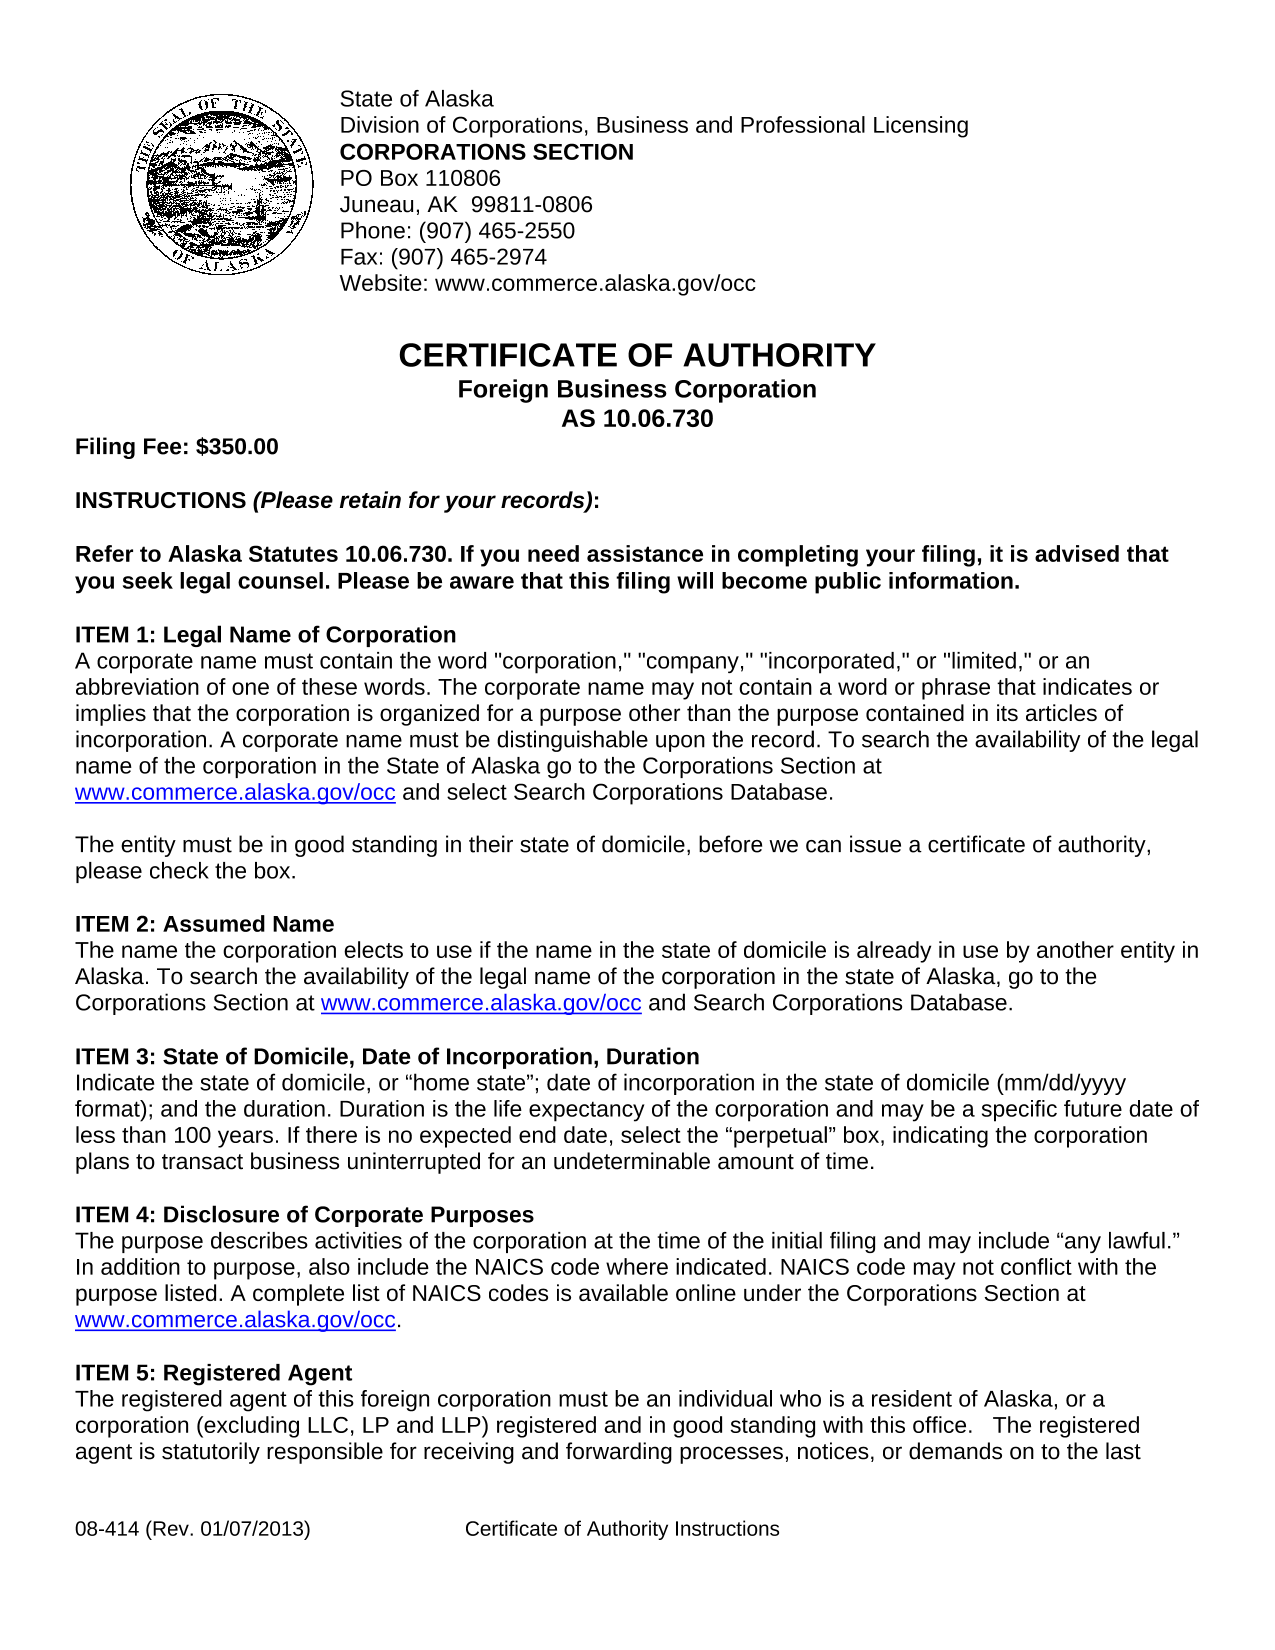 alaska-foreign-corporation-certificate-of-authority